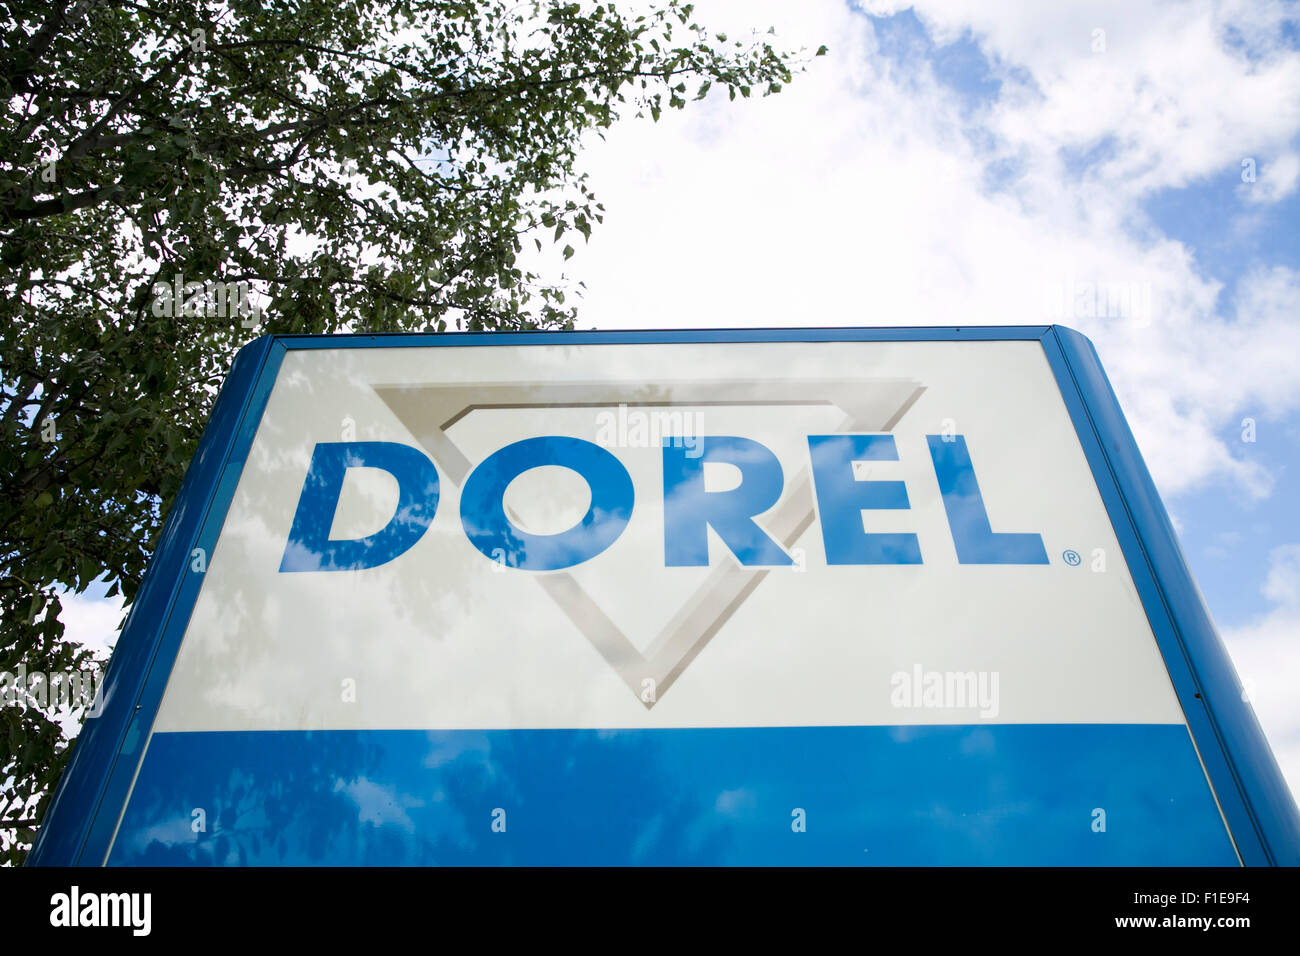 A logo sign outside of a facility occupied by Dorel Industries Inc., in Columbus, Indiana on August 25, 2015. - Stock Image